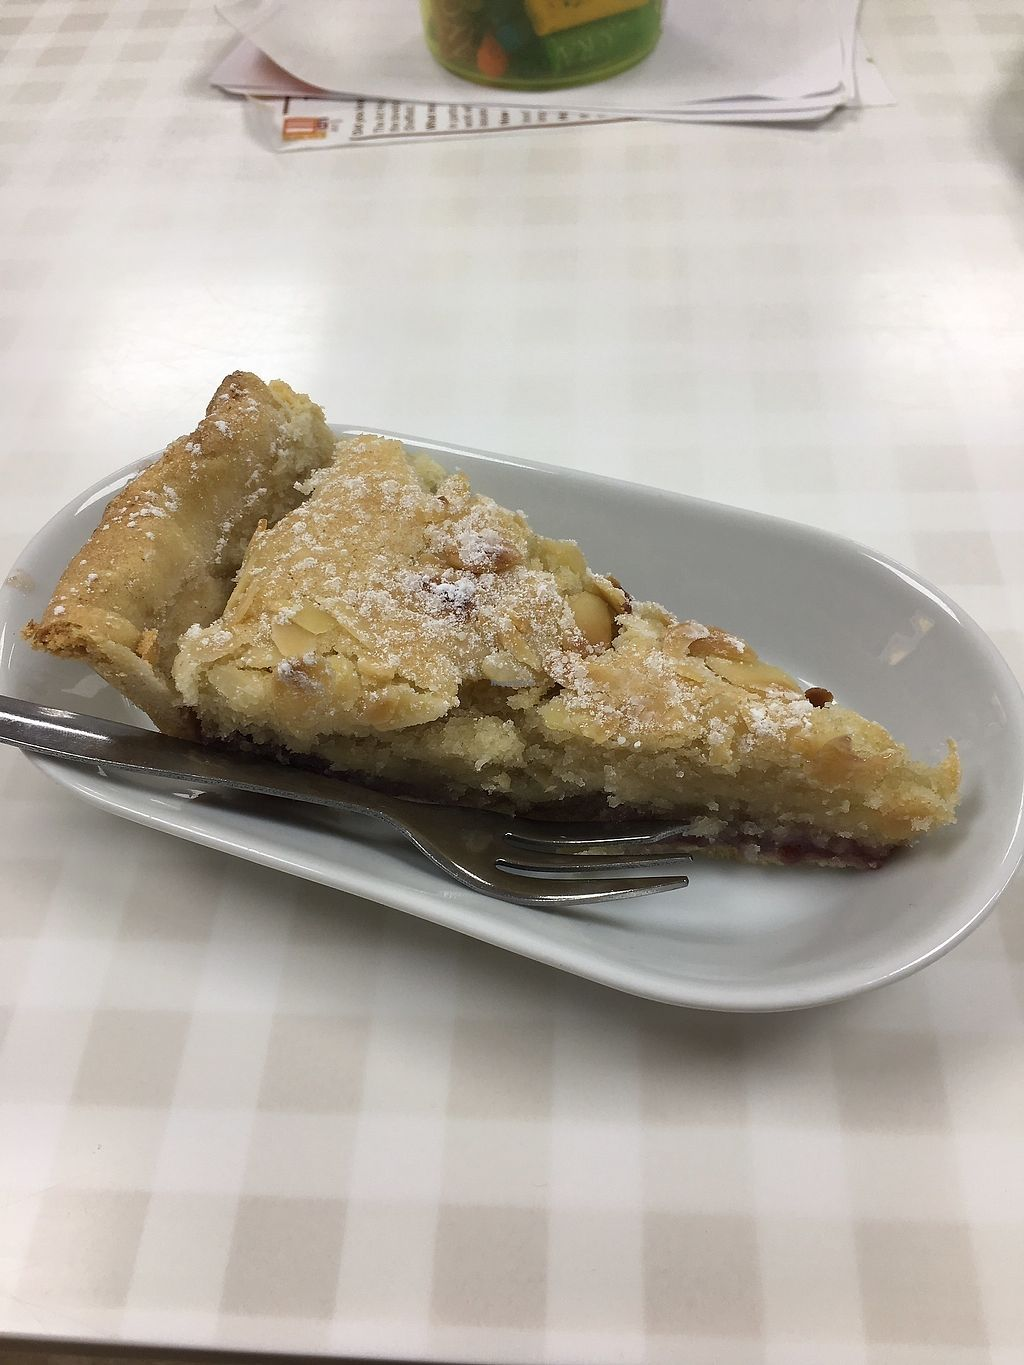 "Photo of The Tea Studio  by <a href=""/members/profile/HannahPerry"">HannahPerry</a> <br/>Vegan Bakewell tart ? <br/> October 24, 2017  - <a href='/contact/abuse/image/86976/318545'>Report</a>"